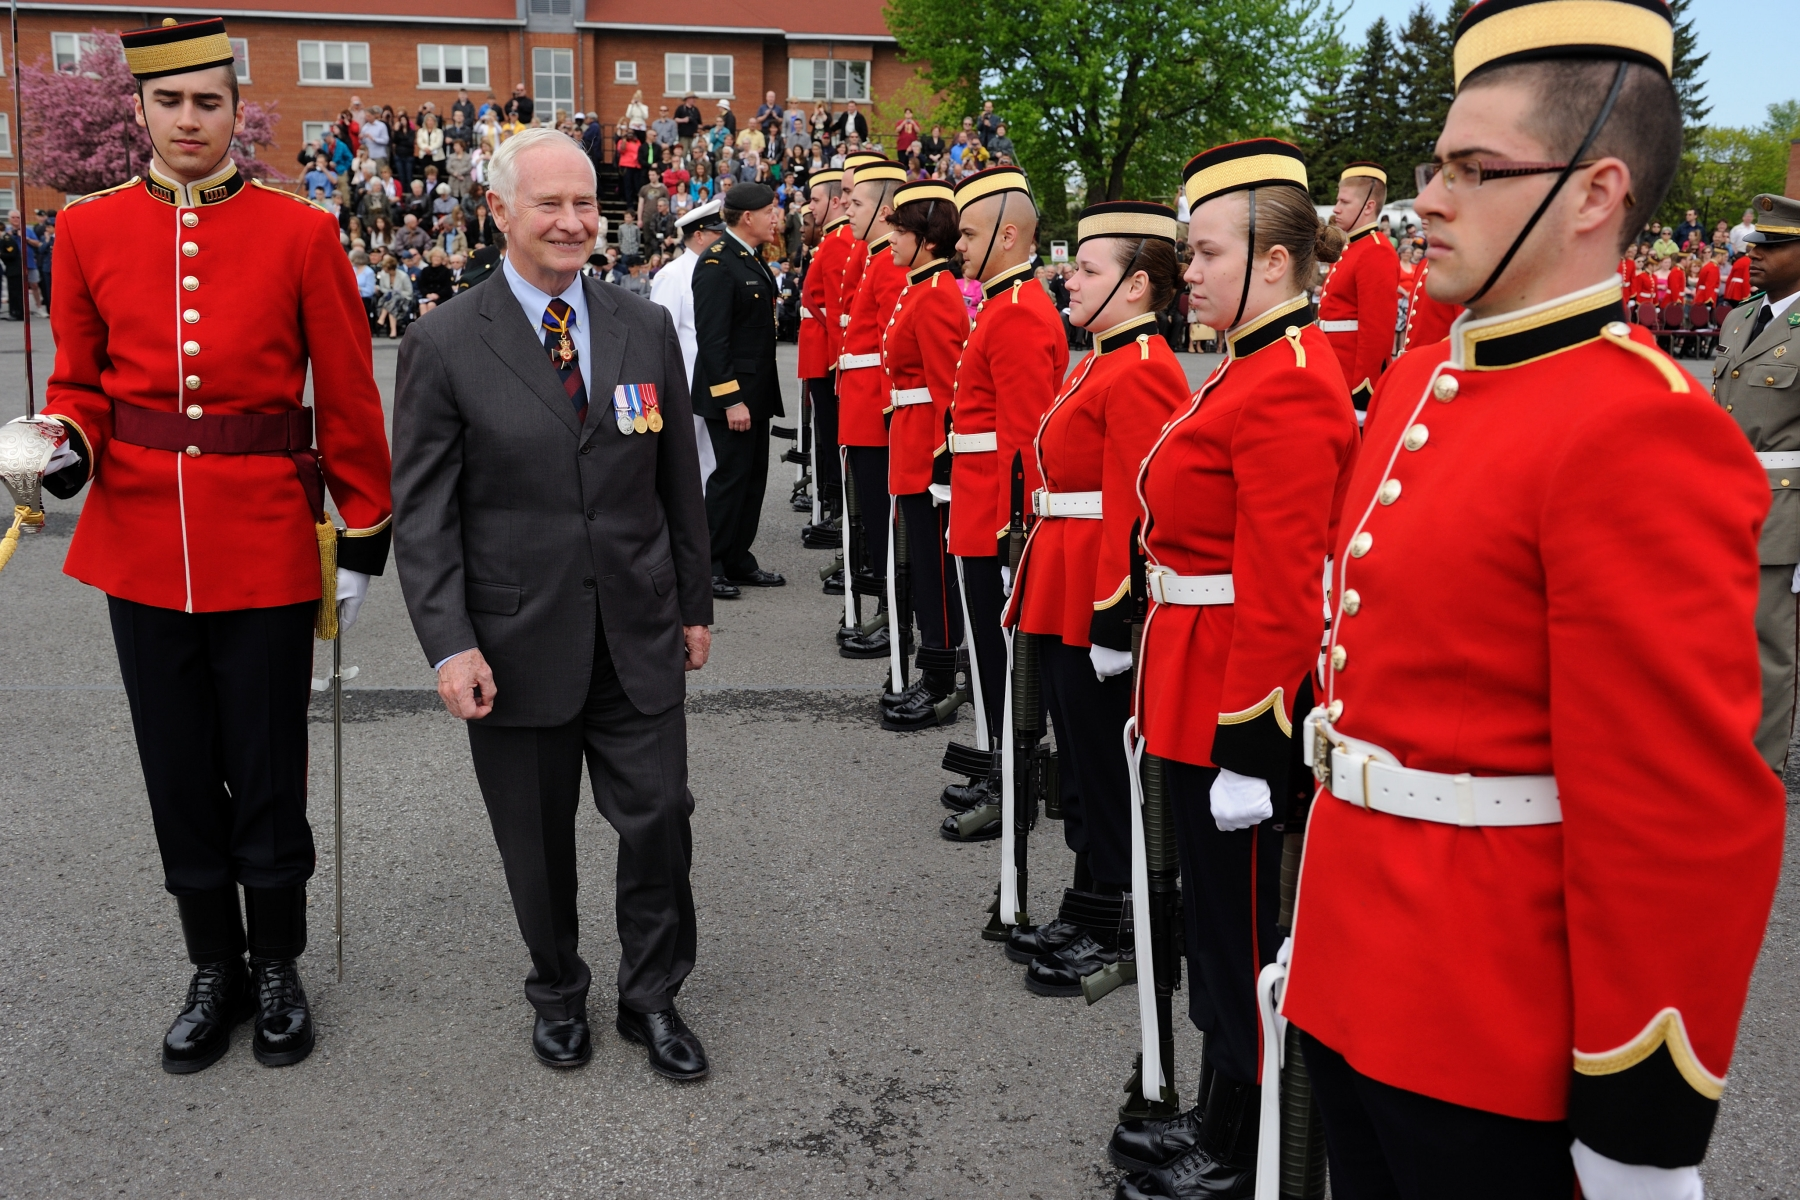 The Governor General of Canada visited Saint-Jean-sur-Richelieu, Quebec, on Saturday, May 21, 2011. During this visit, he officiated at a ceremony to consecrate and present The Queen's colours and those of the Royal Military College Saint-Jean (RMC Saint-Jean).